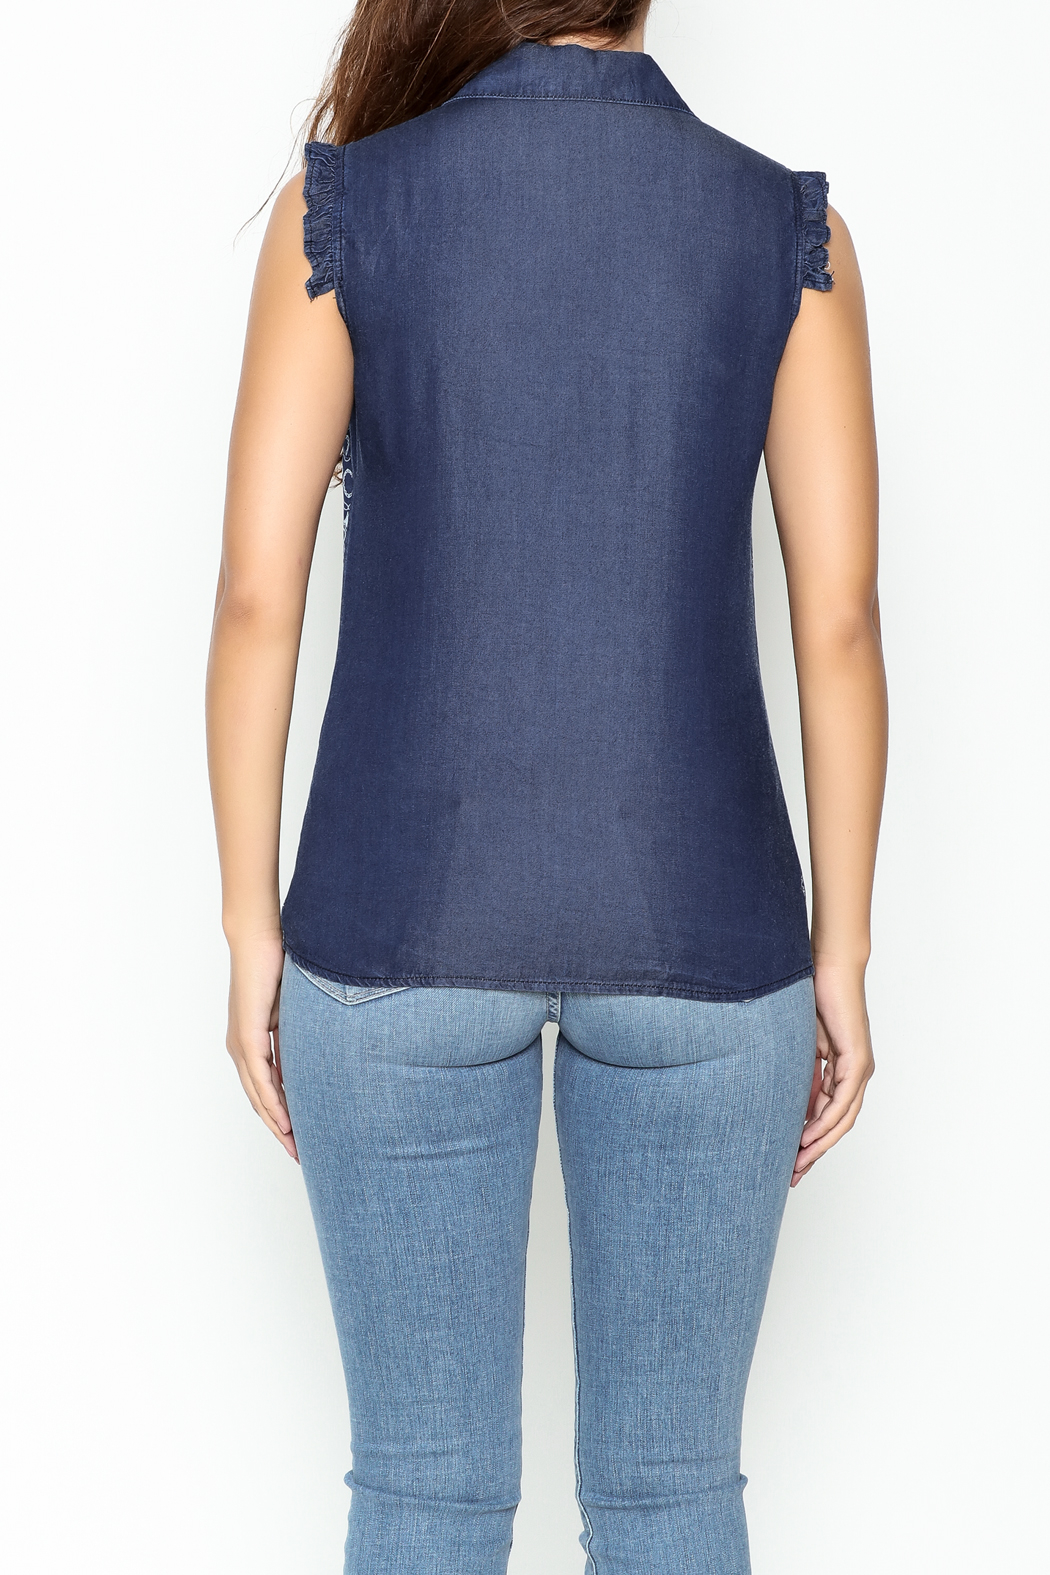 Marvy Fashion Printed Jean Top - Back Cropped Image